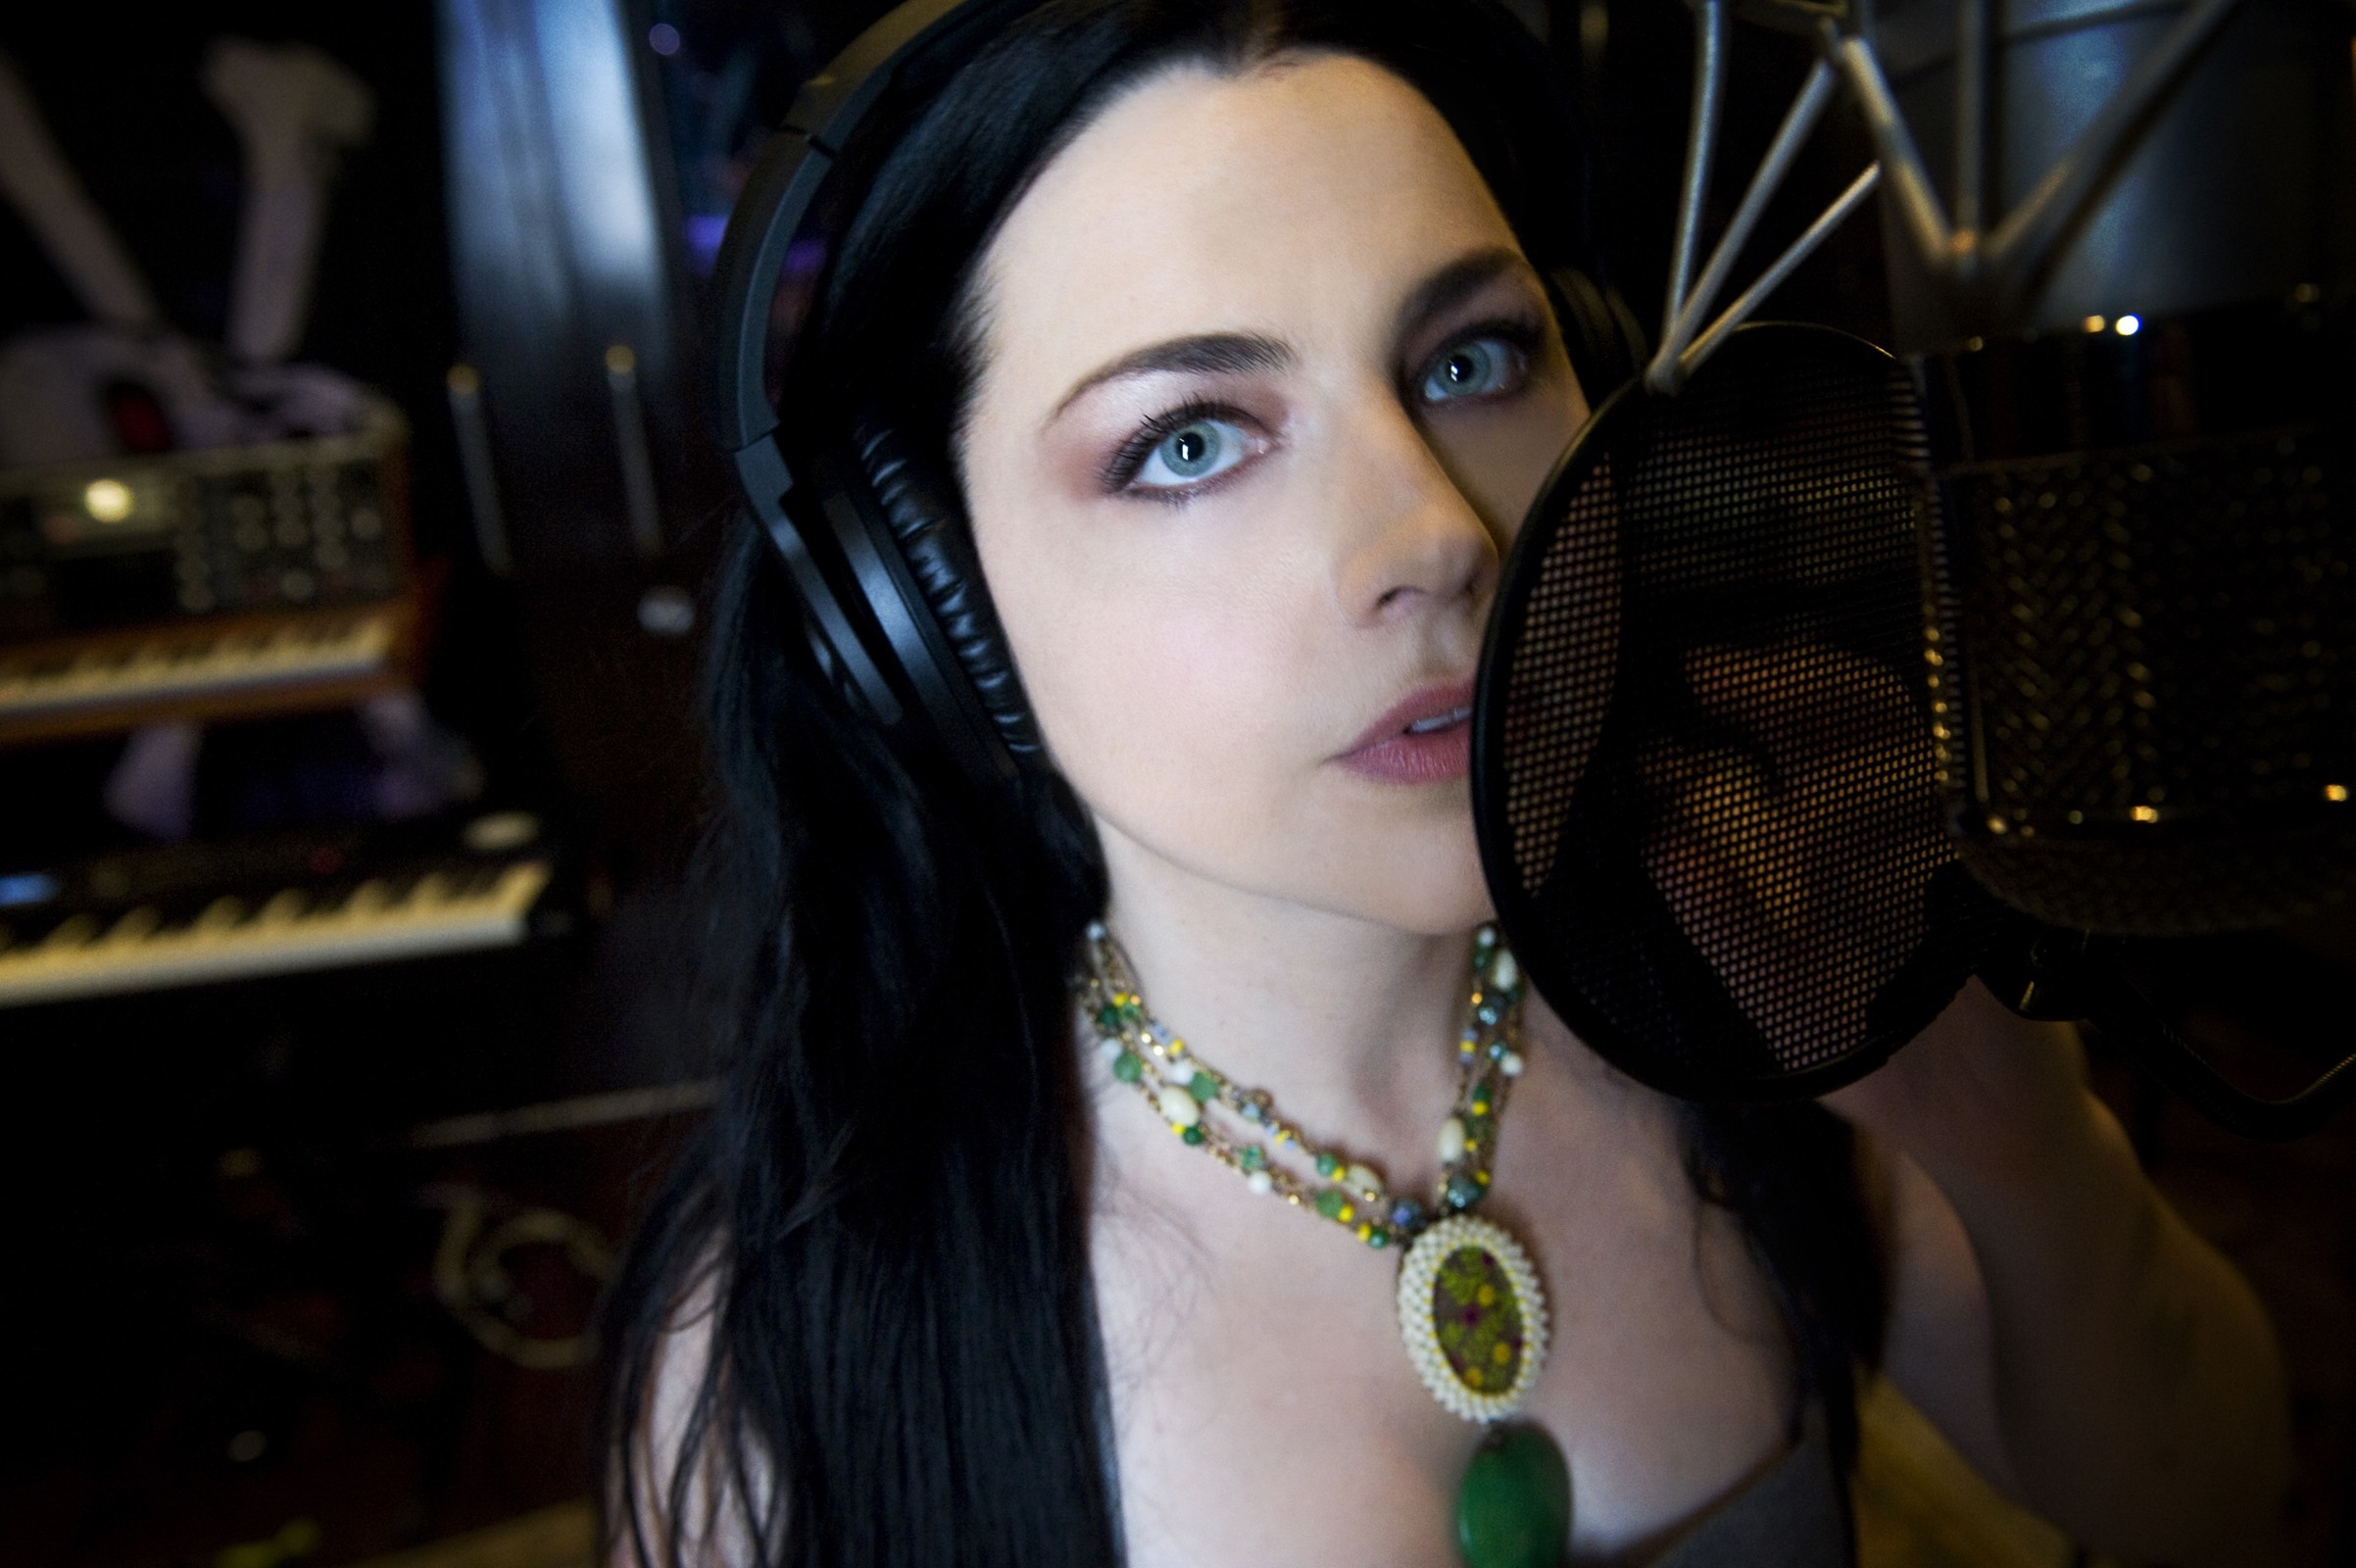 blue eyes amy lee HD Wallpaper